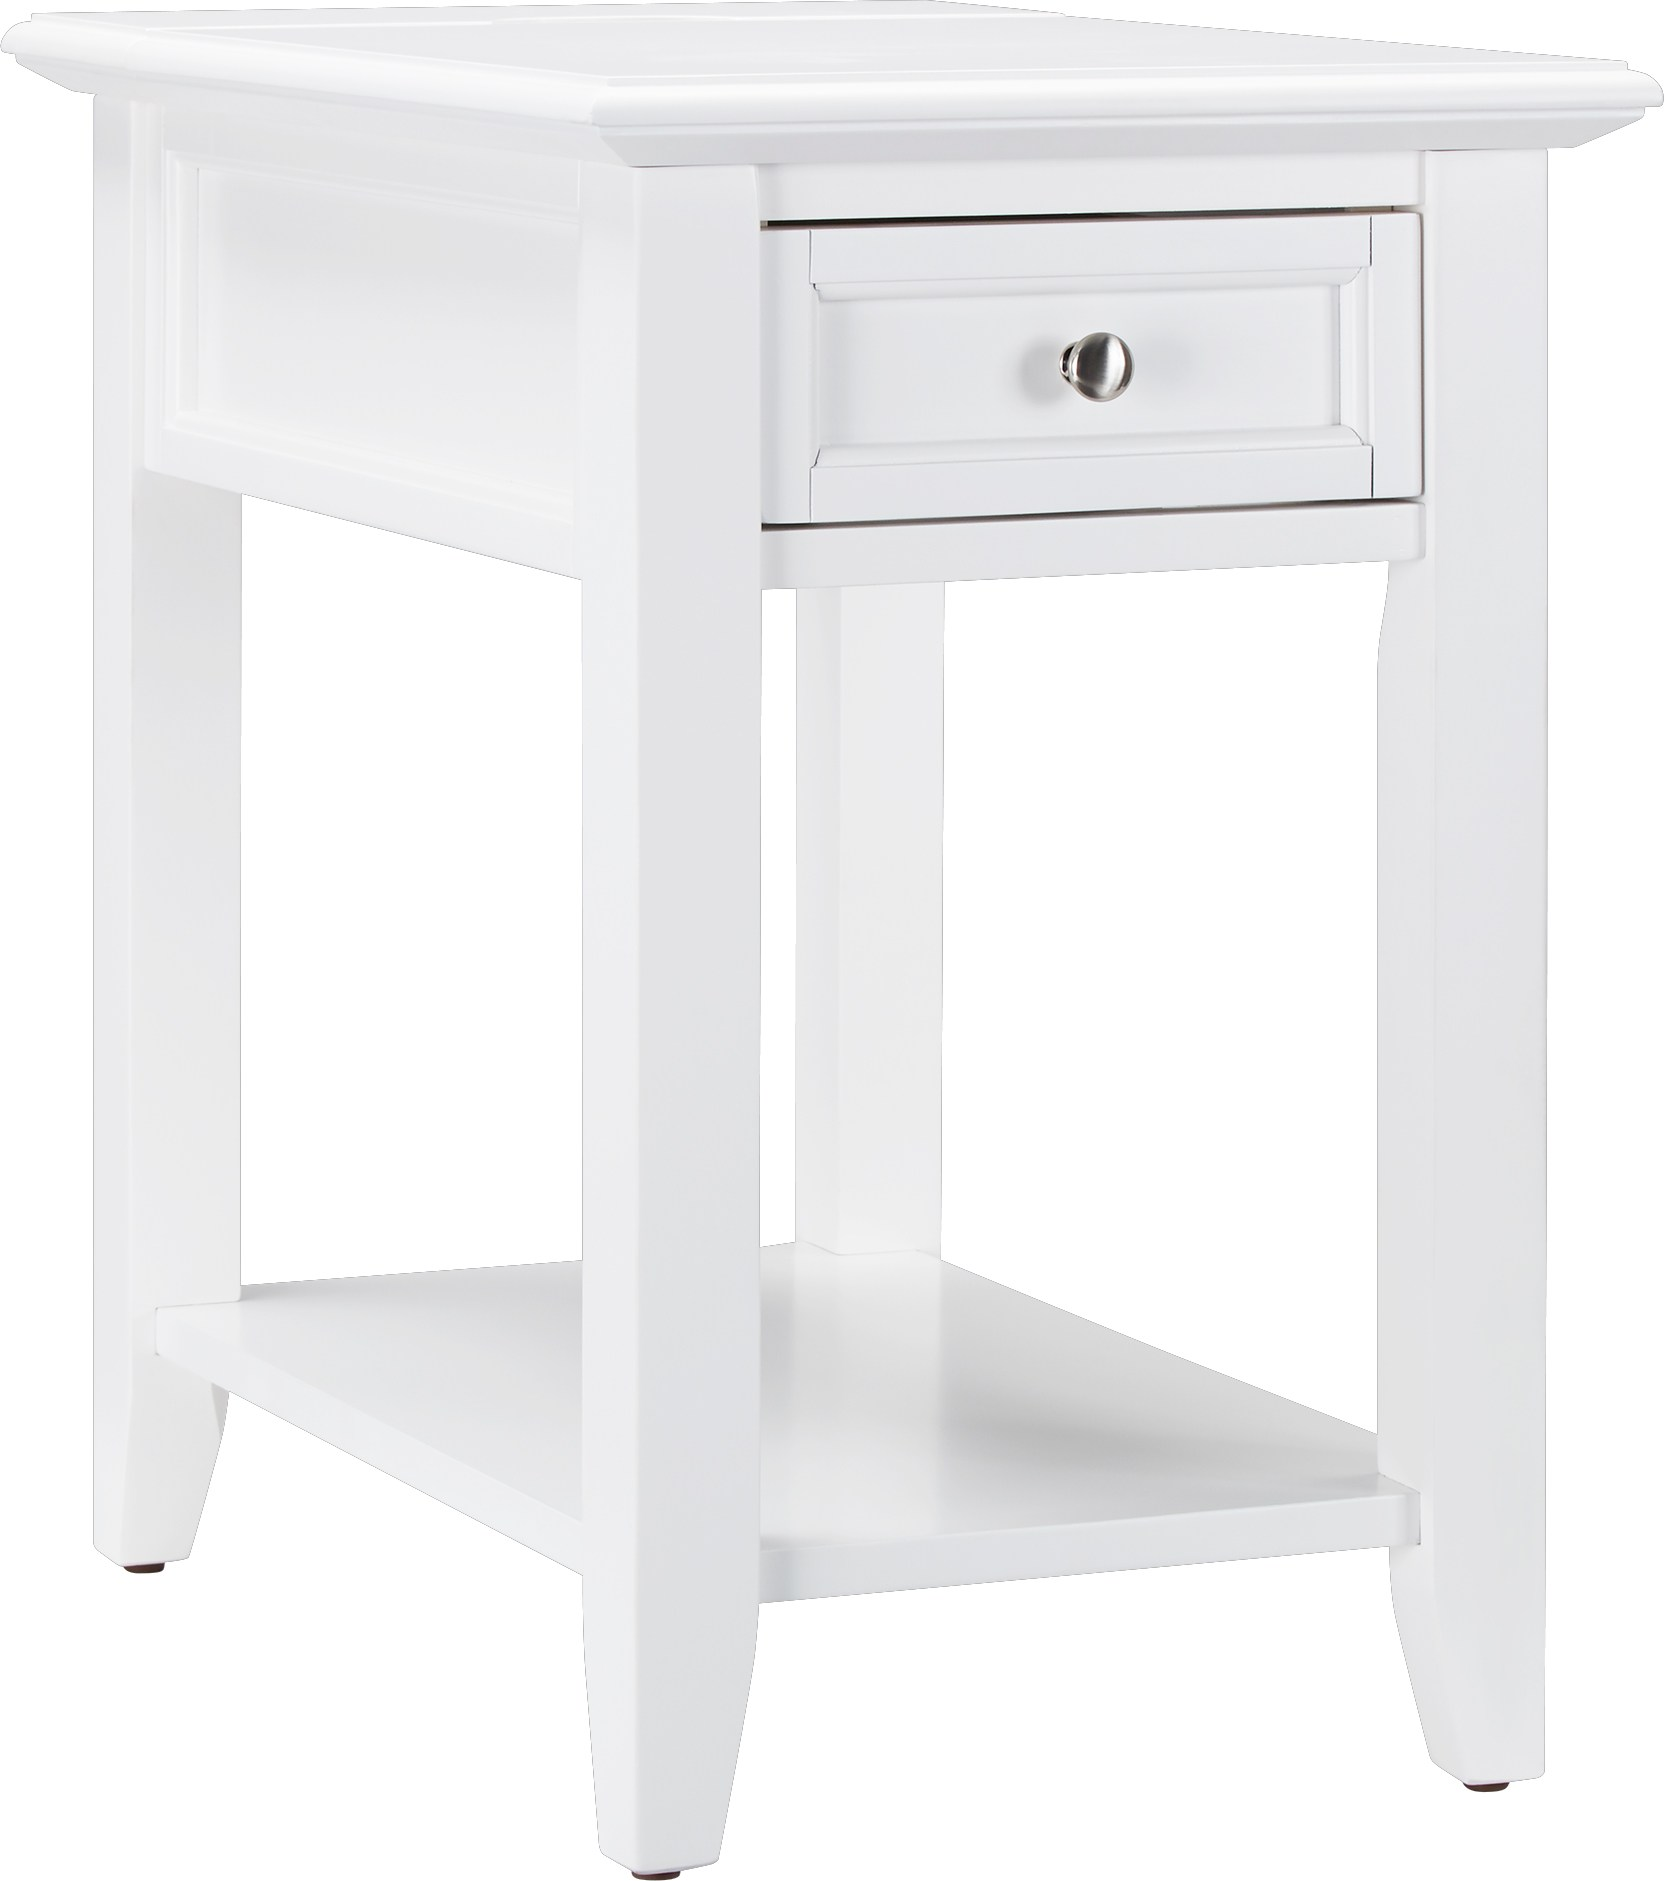 leda white accent table tables colors oval garden nesting home furniture design gray end magnifying lamp threshold nightstand small decorative glass patio with umbrella hole